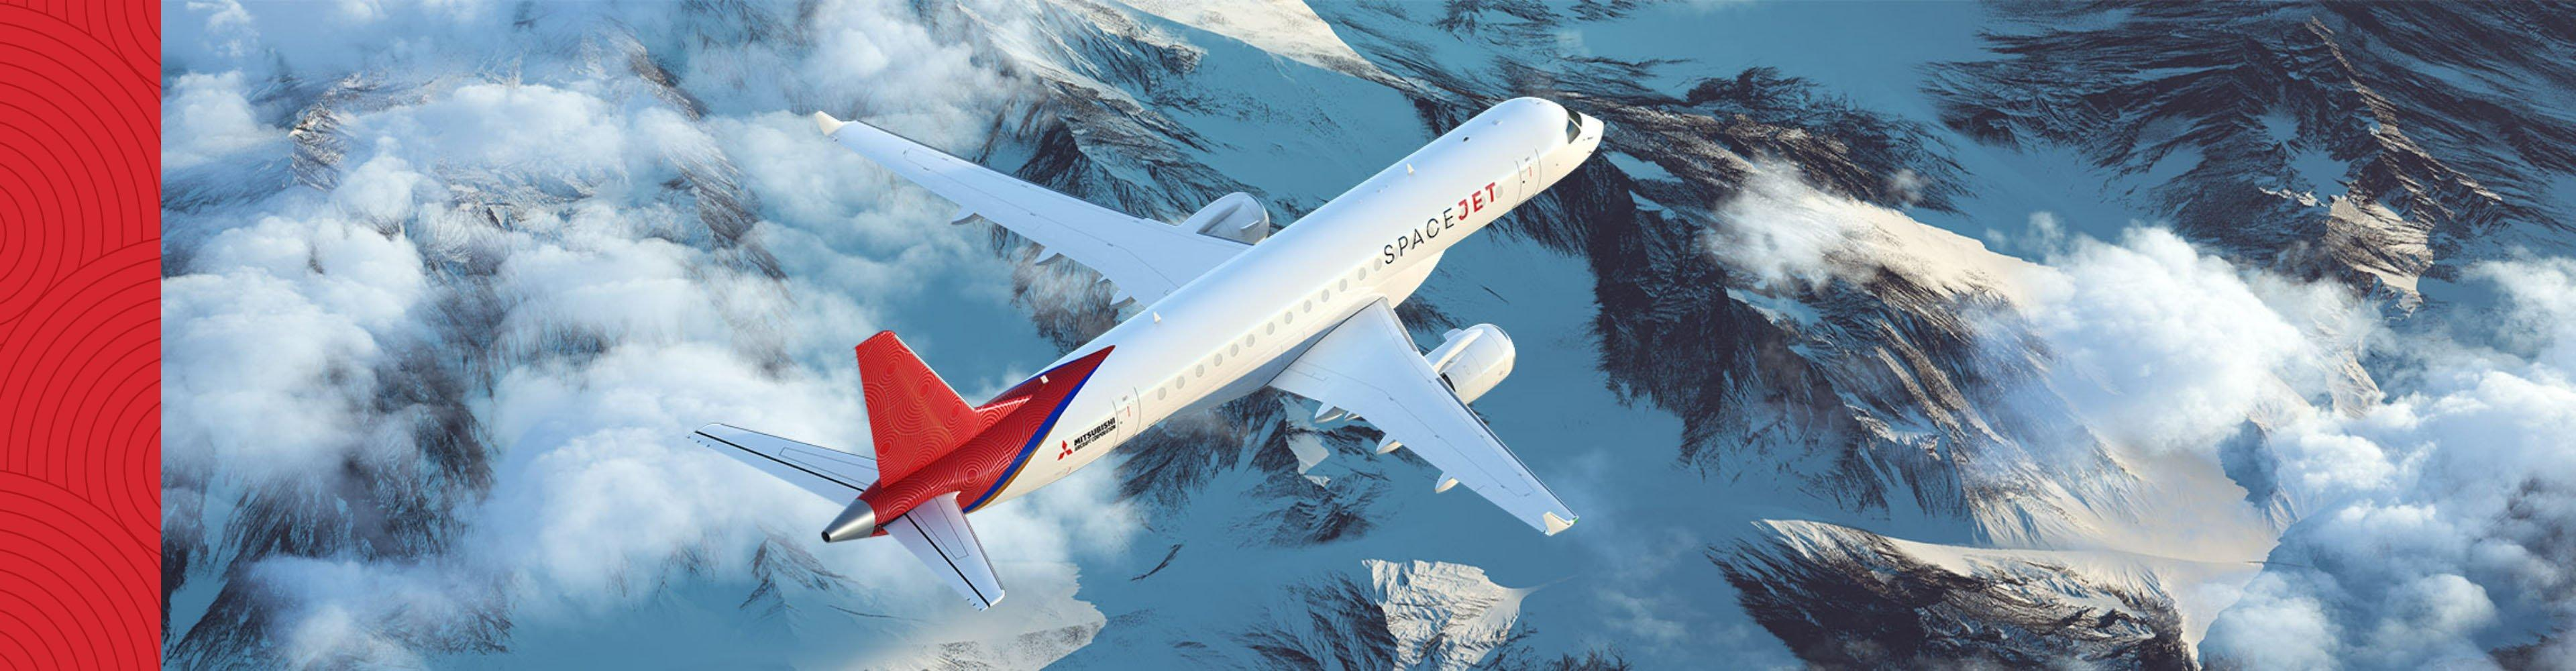 Mitsubishi Heavy Industries Suspends SpaceJet Development | Aviation Week  Network